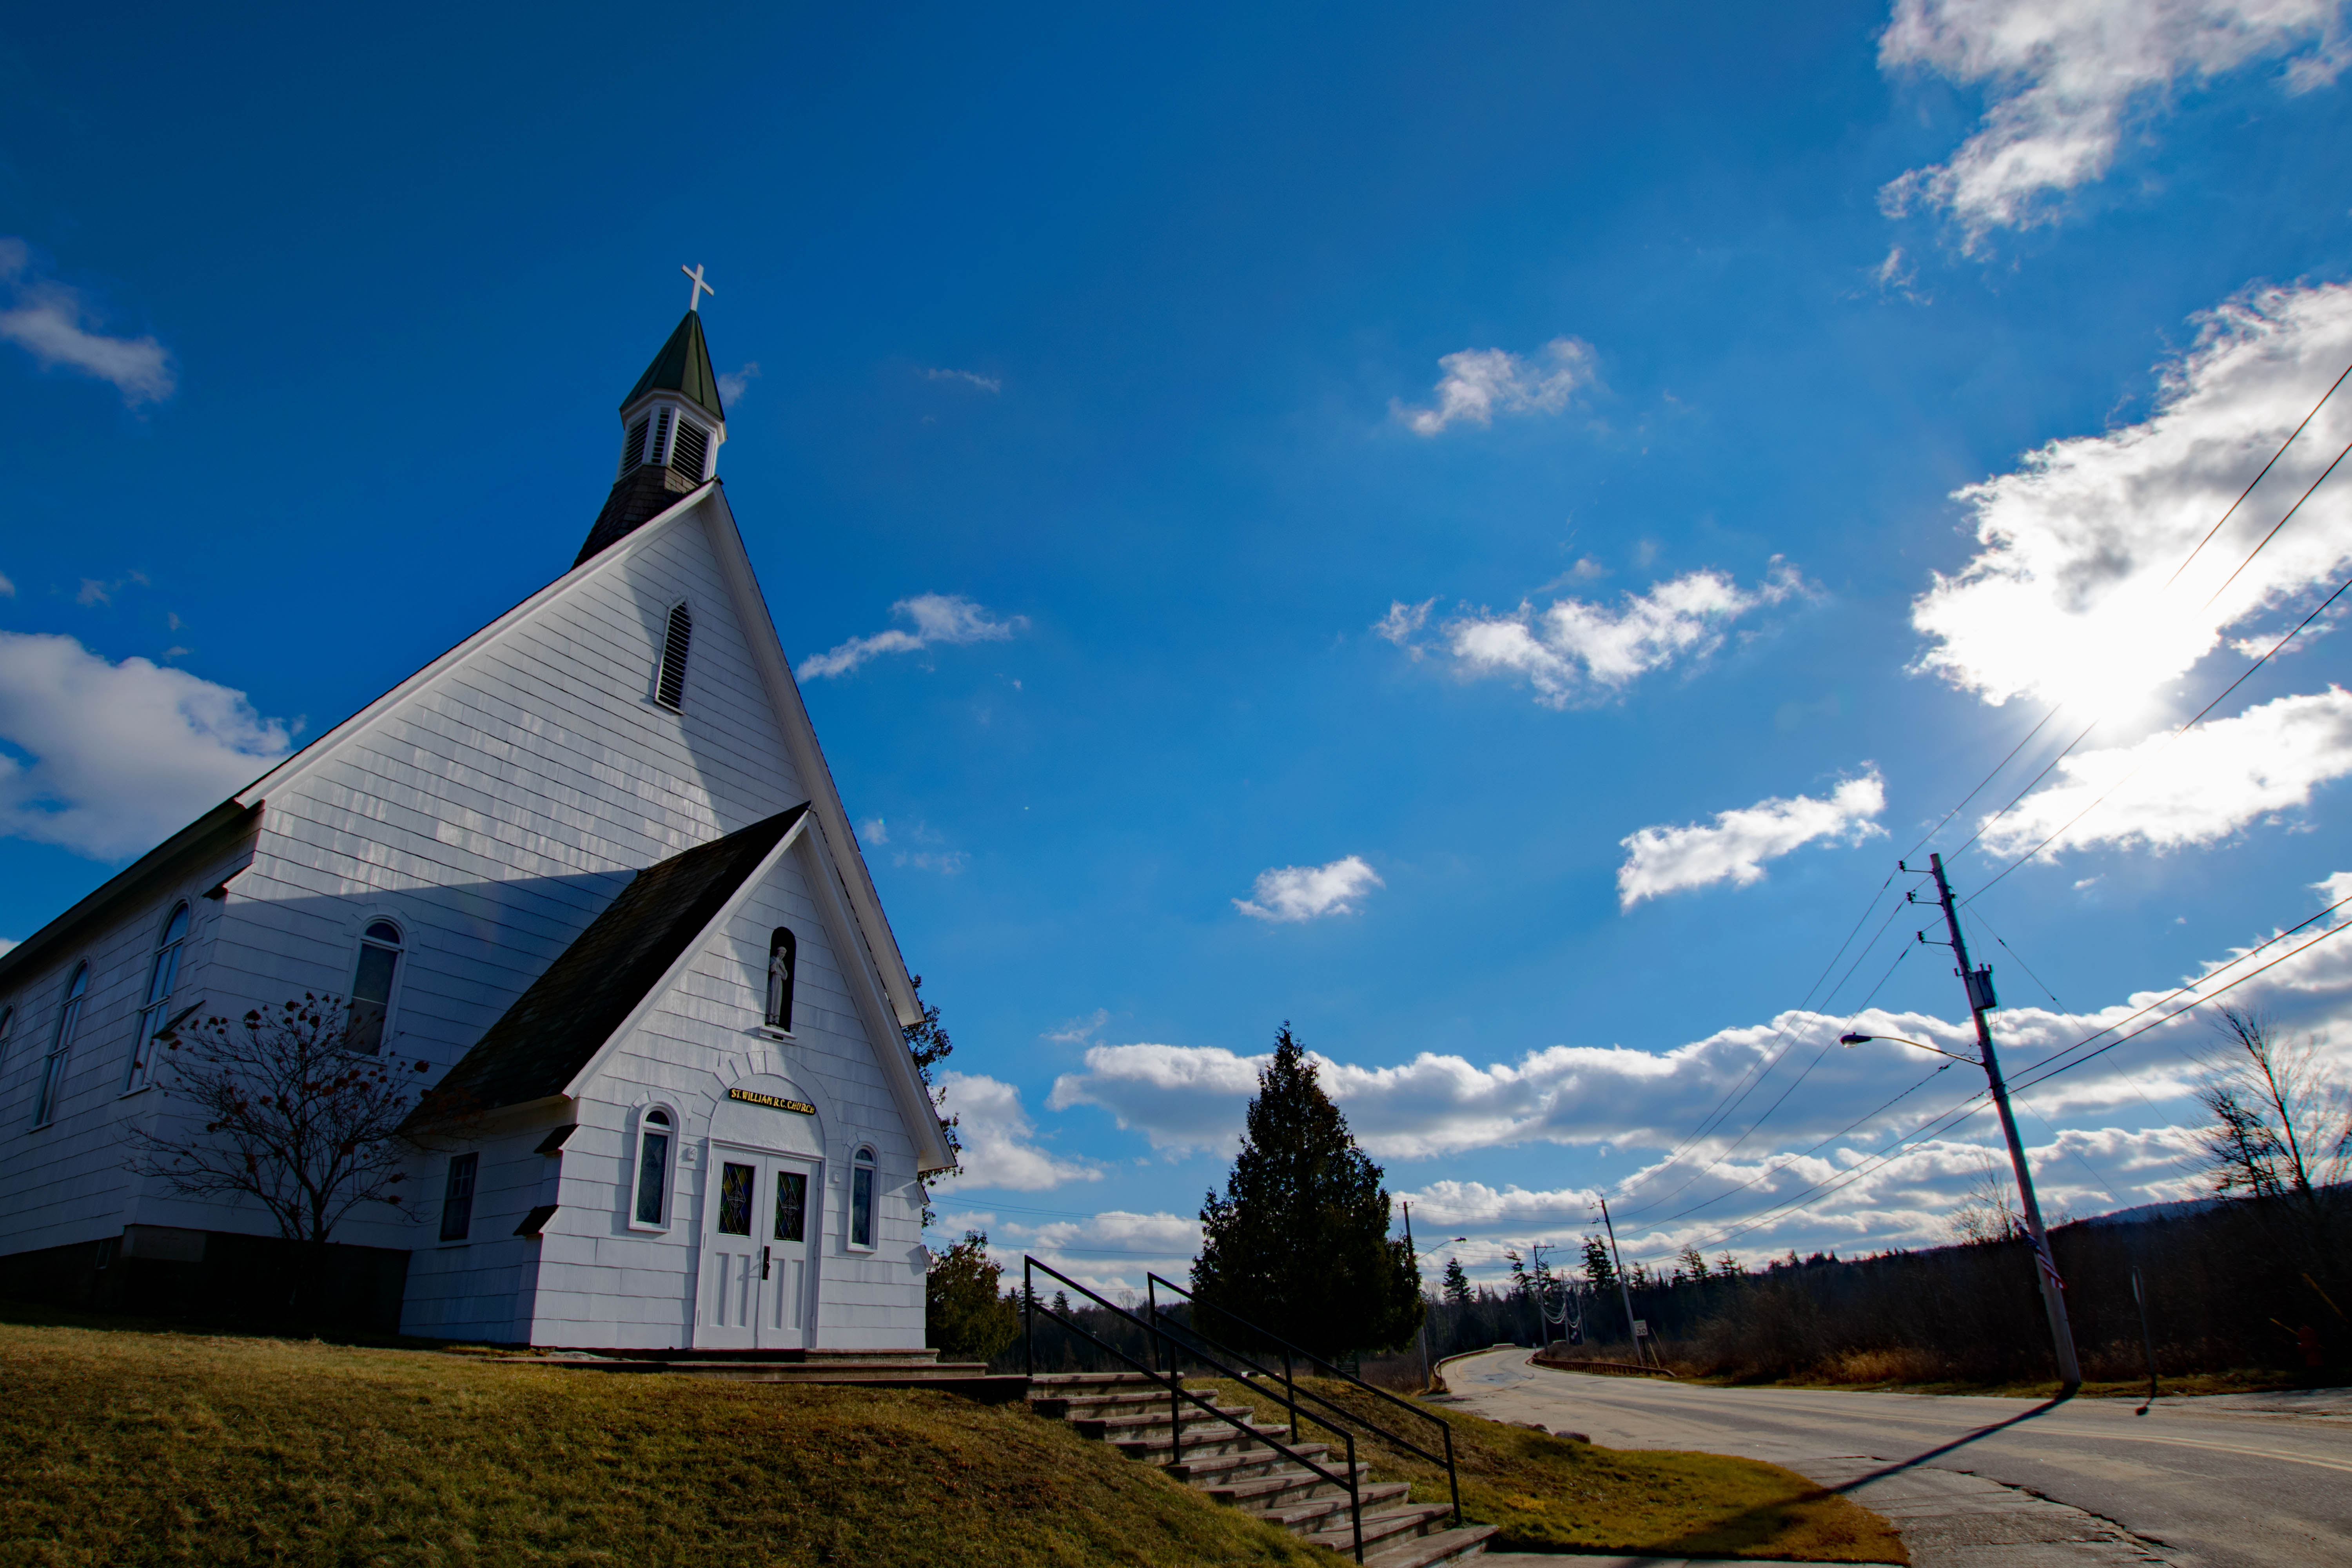 Church in Raquette Lake, NY